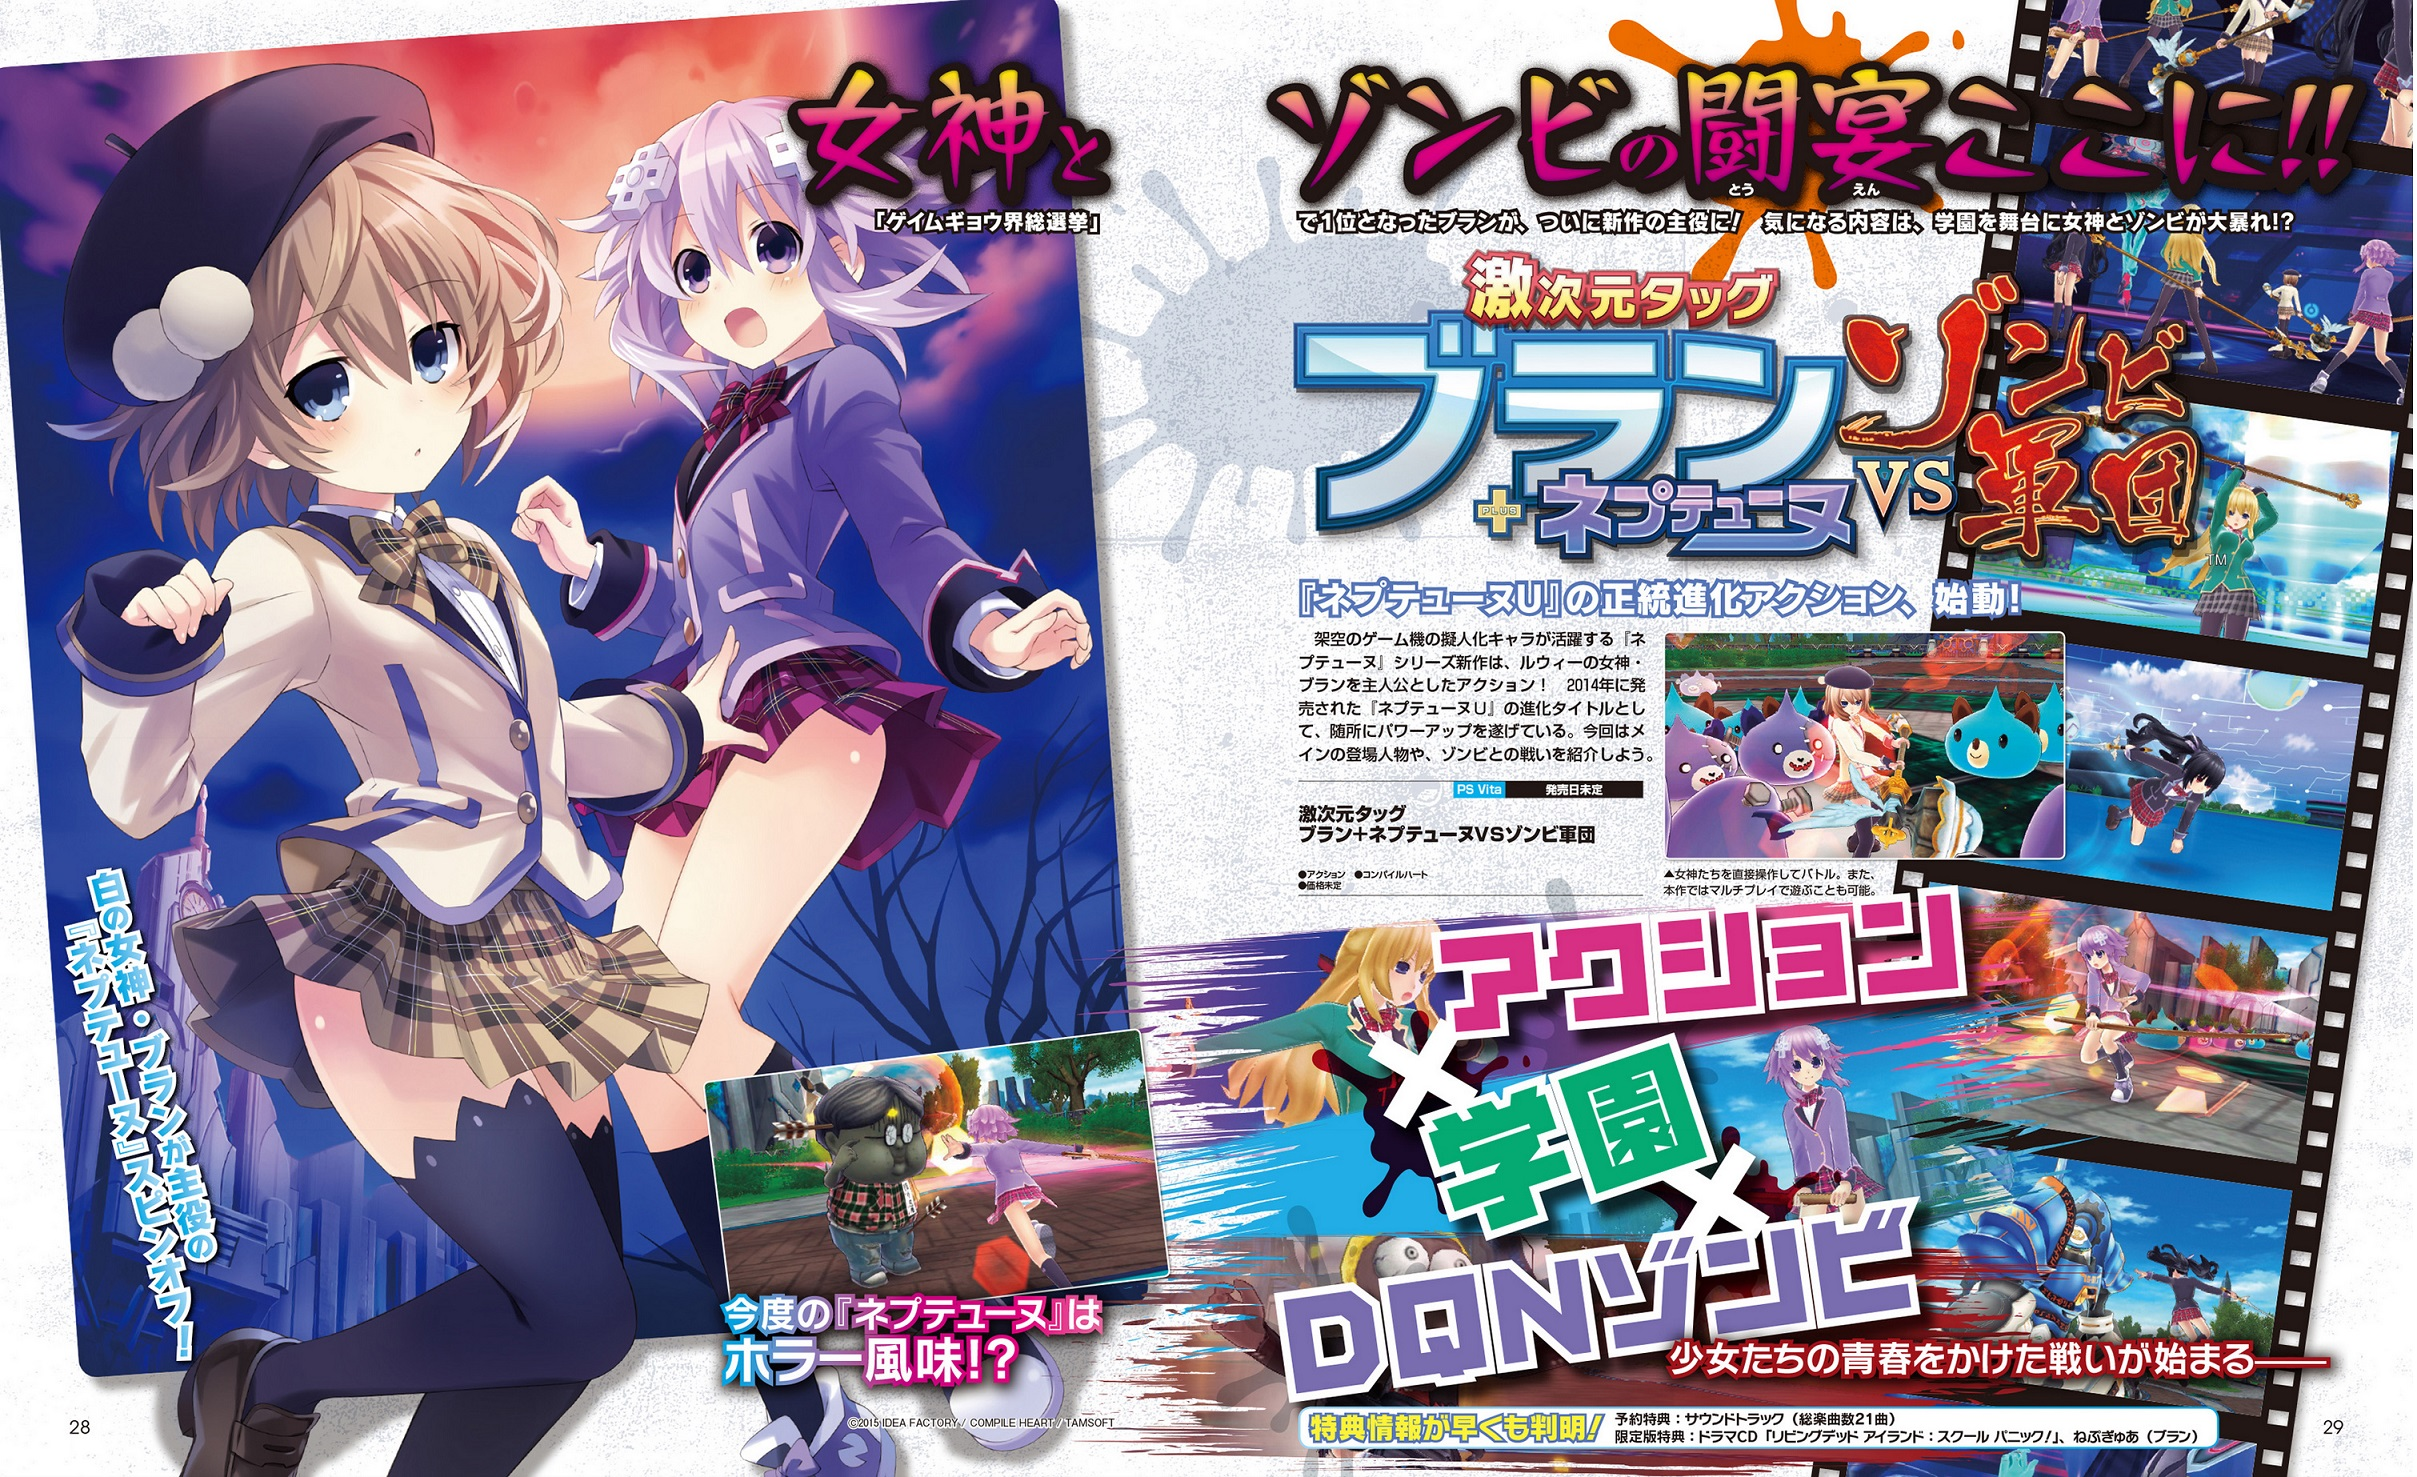 Extreme-Dimension-Tag-Blanc-Neptune-VS-Zombie-Army-scan- (1)